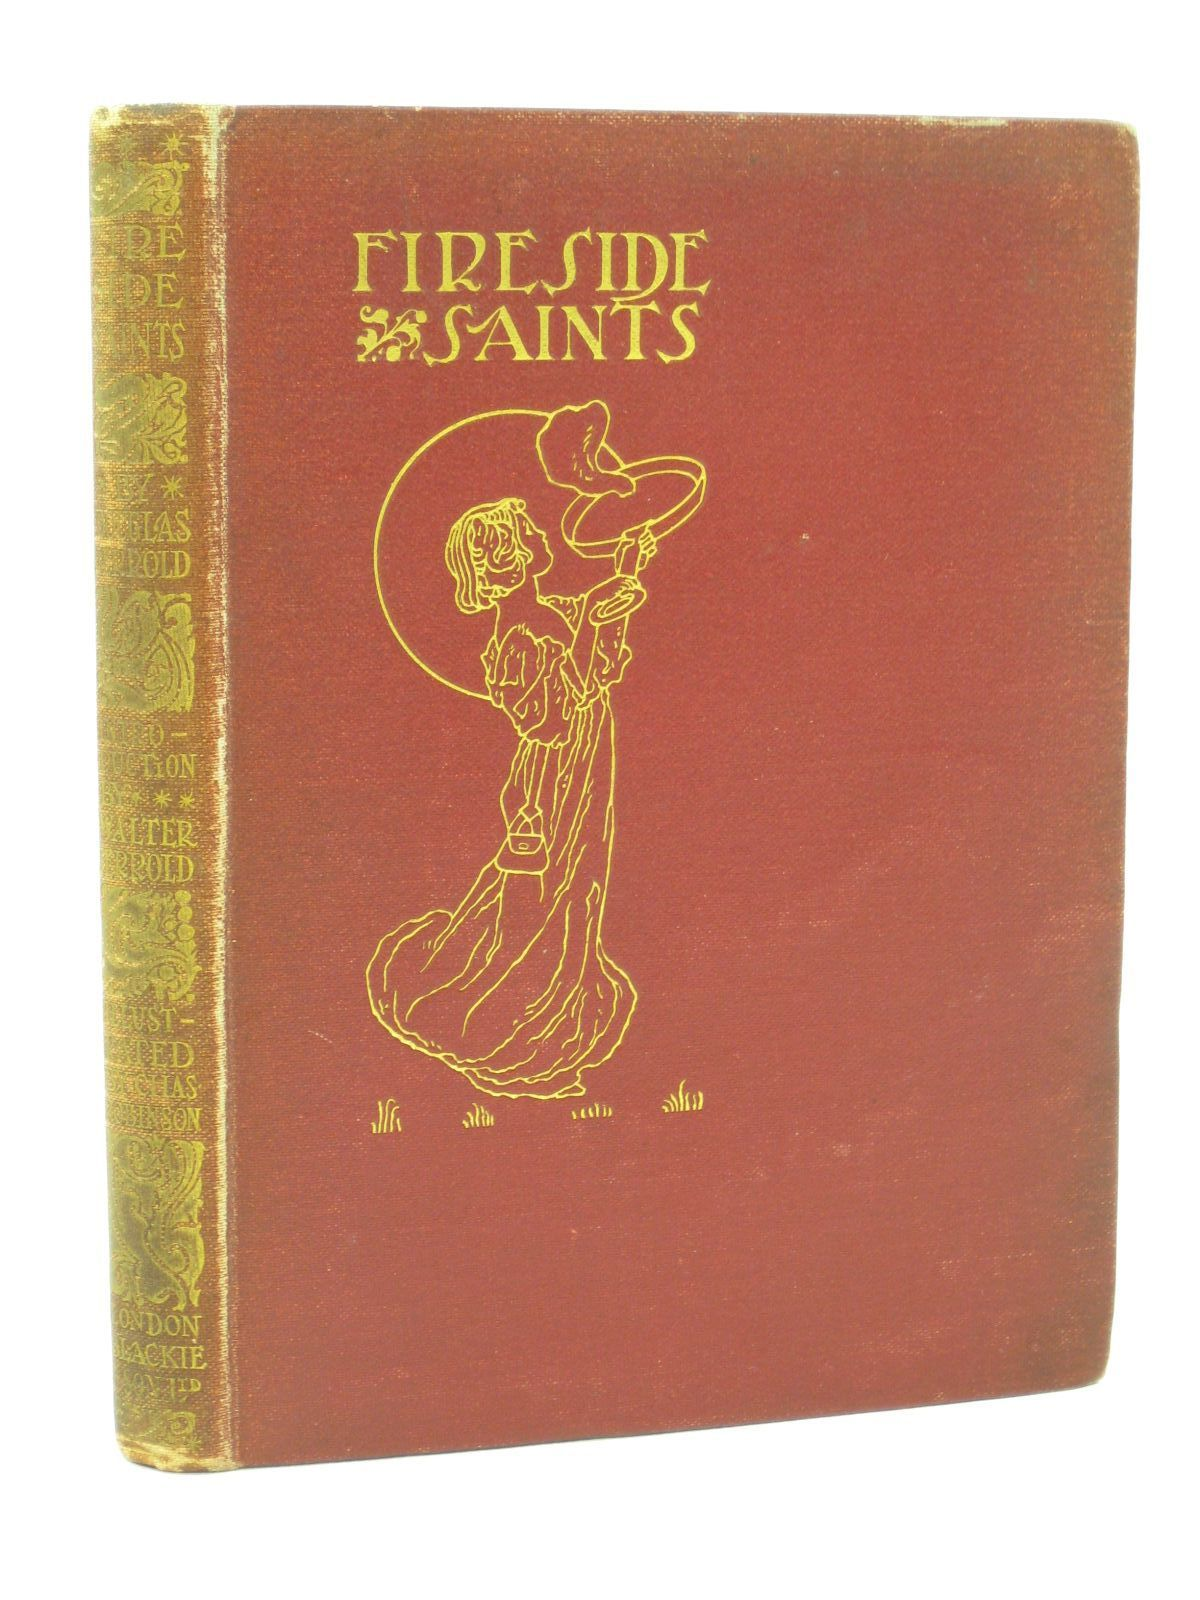 Photo of FIRESIDE SAINTS written by Jerrold, Douglas illustrated by Robinson, Charles published by Blackie & Son Ltd. (STOCK CODE: 1407152)  for sale by Stella & Rose's Books